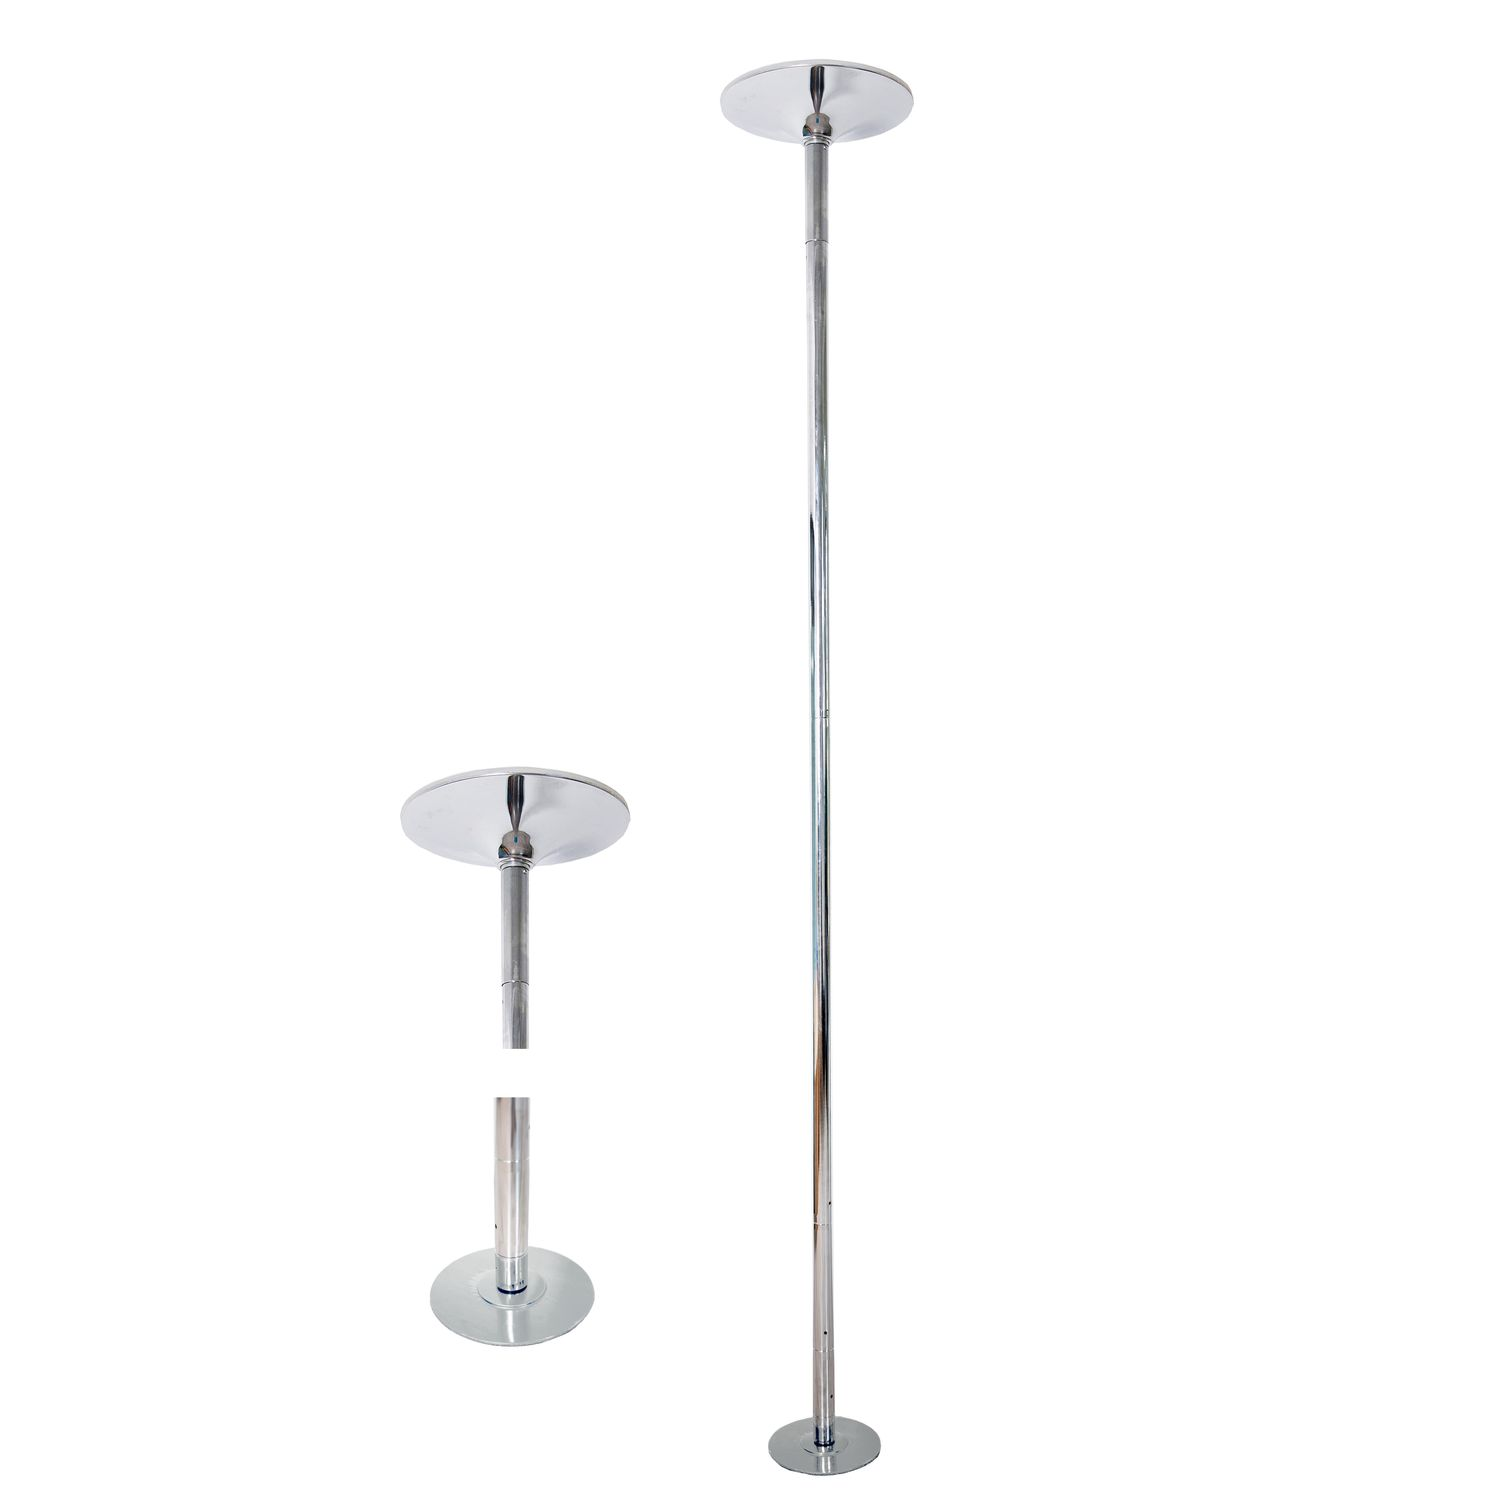 Poledance Stange 45 mm